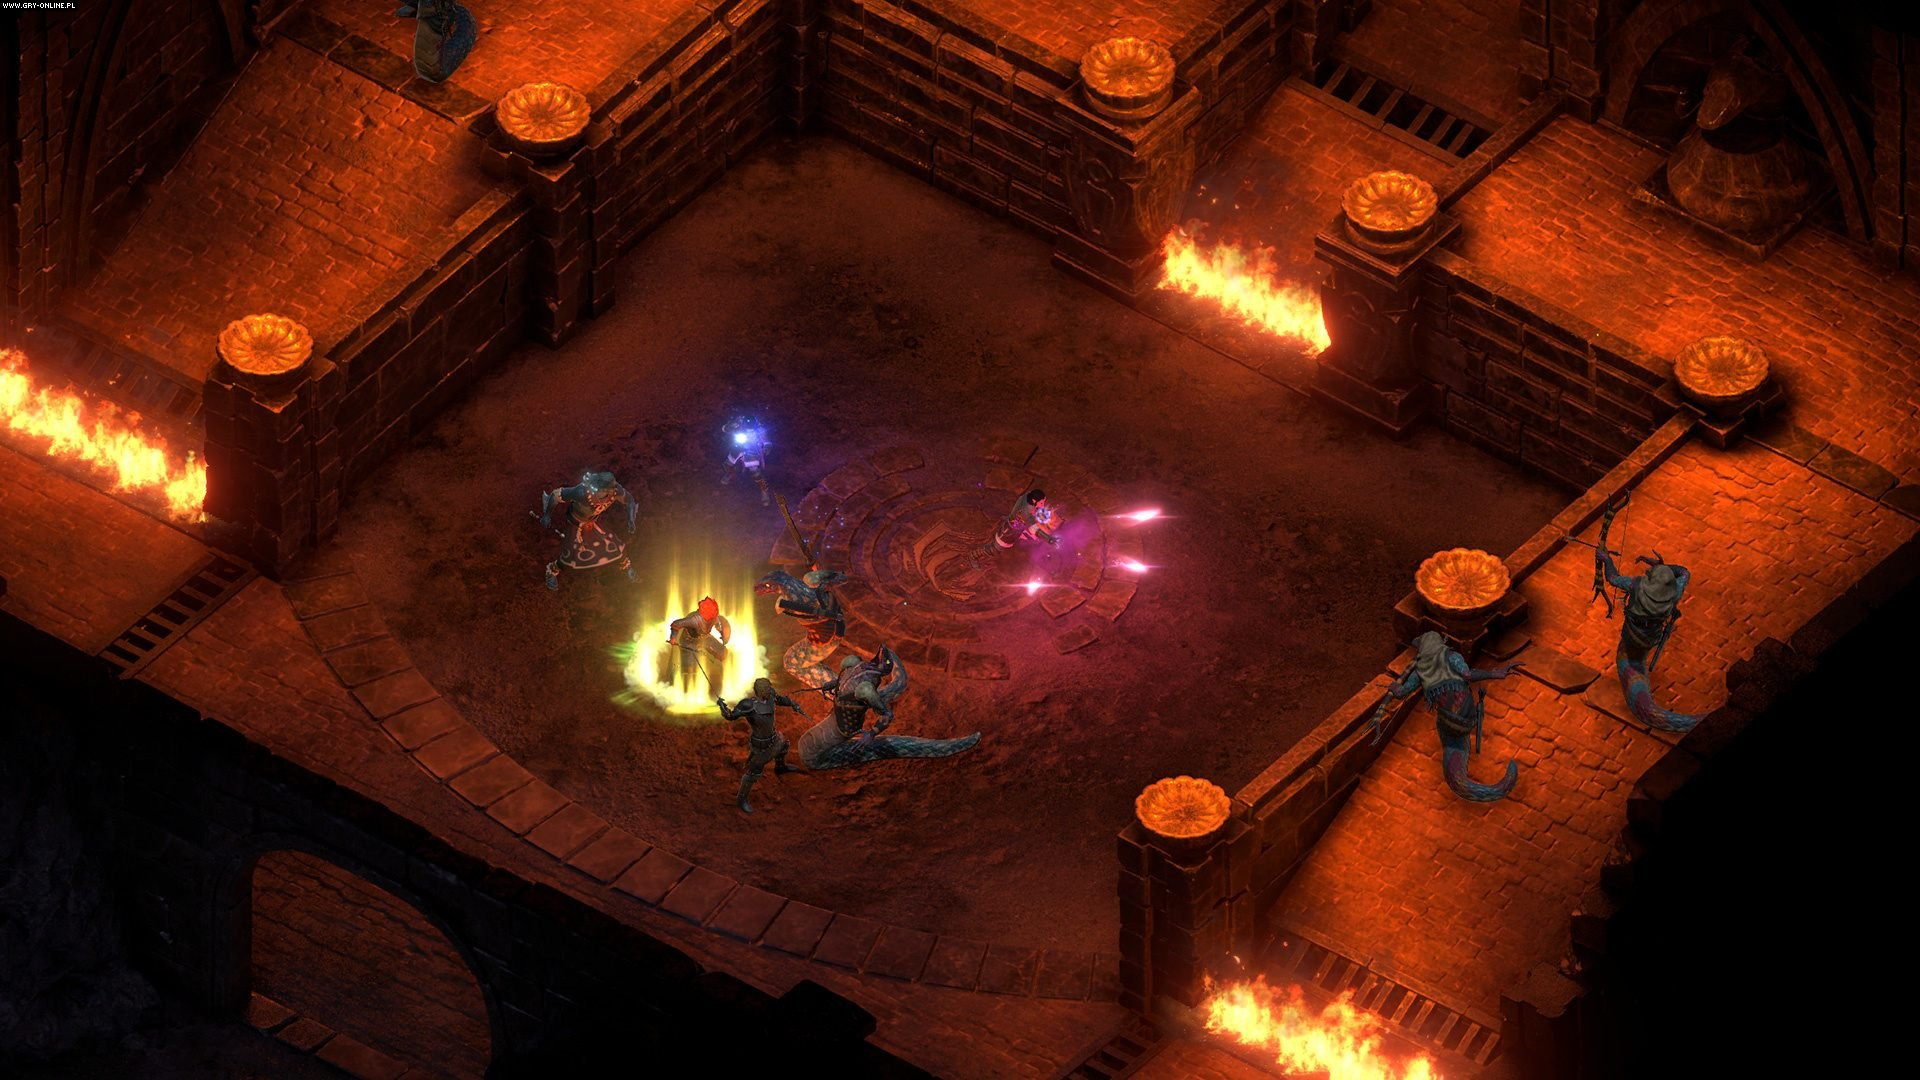 Pillars of Eternity II: Deadfire PC, PS4, XONE, Switch Games Image 18/27, Obsidian Entertainment, Versus Evil